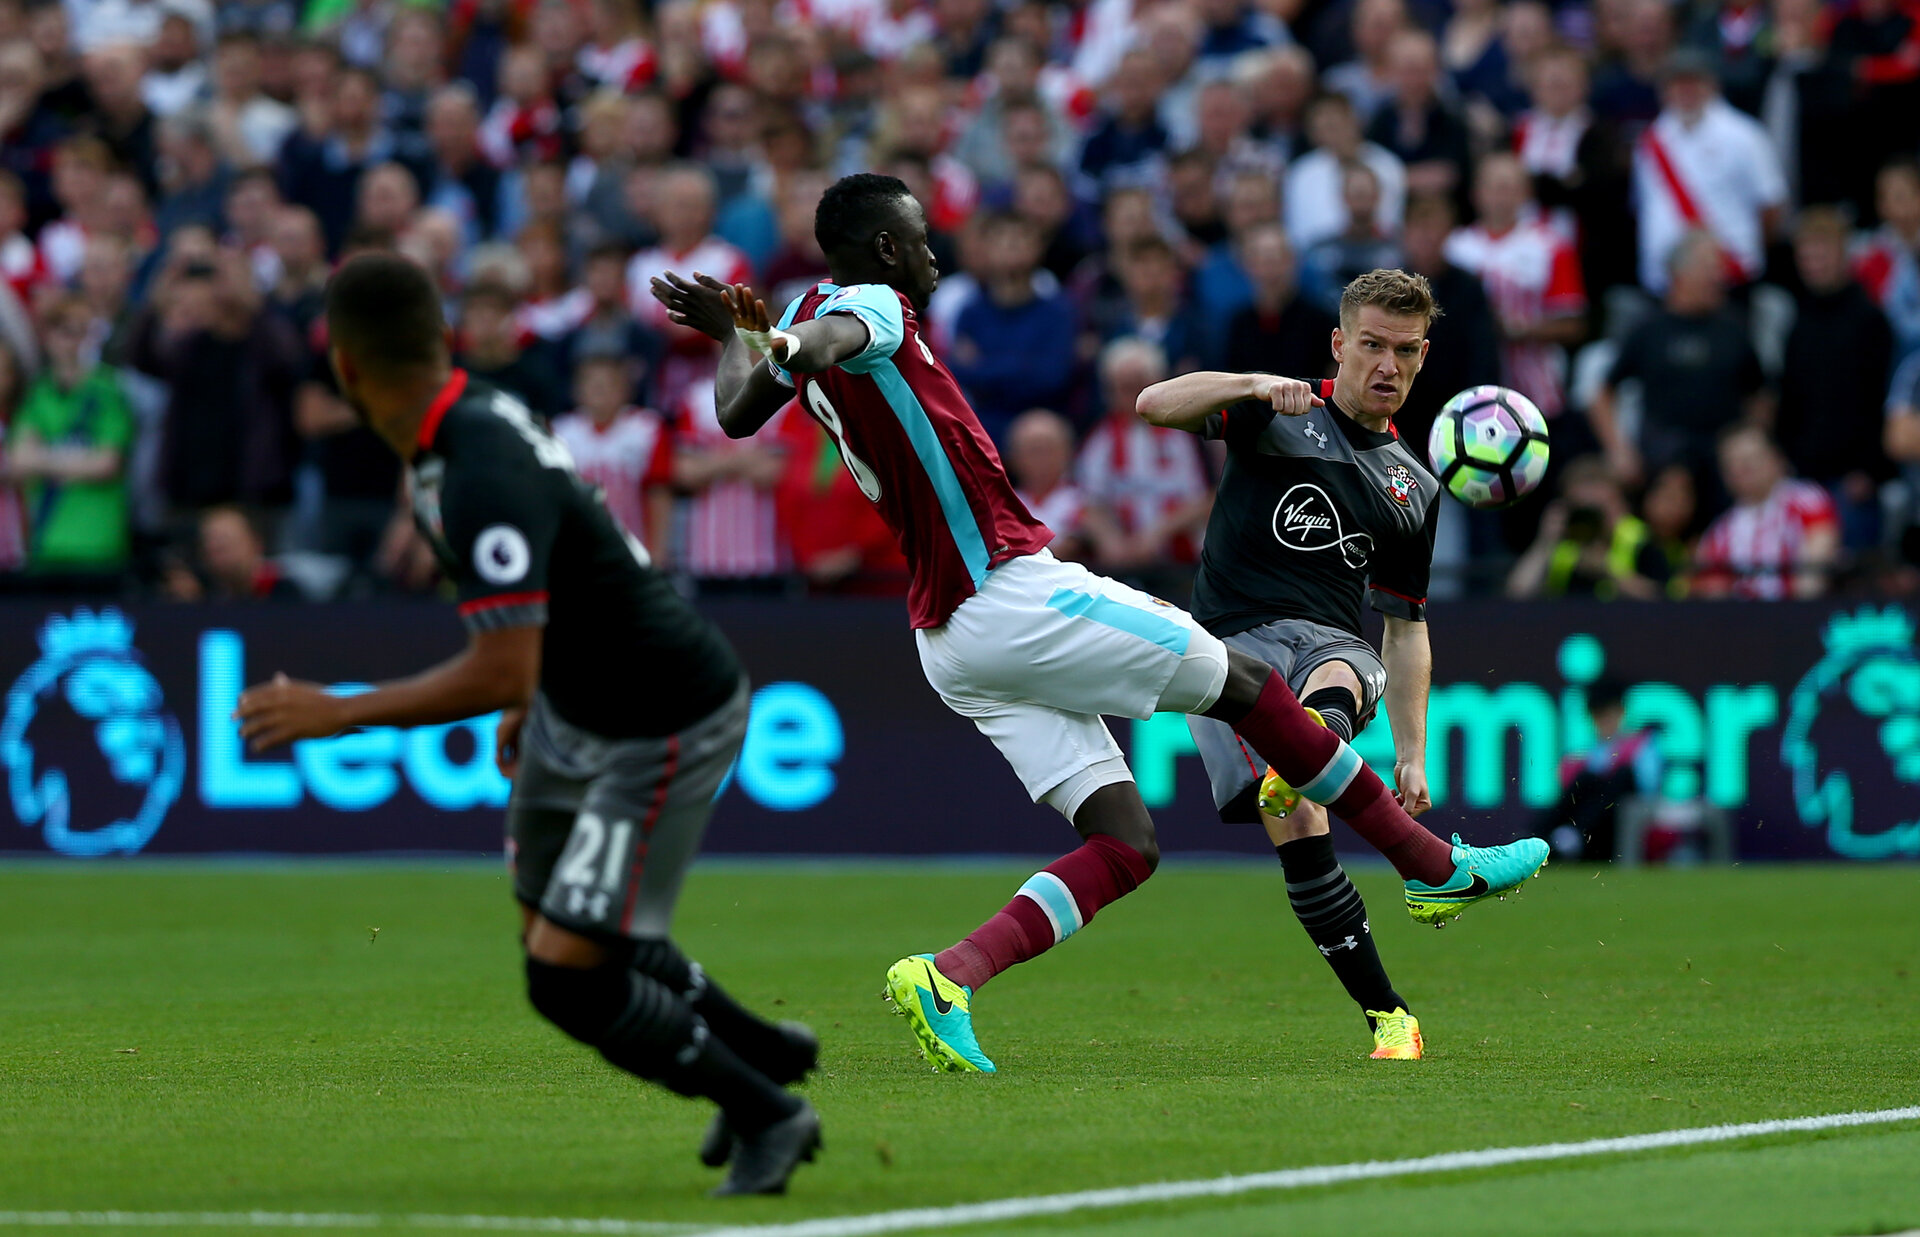 Steven Davis during the Premier League match between West Ham United and Southampton at Queen Elizabeth Olympic Park, London, United Kingdom on 25 September 2016. Photo by Matt Watson/SFC/Digital South.